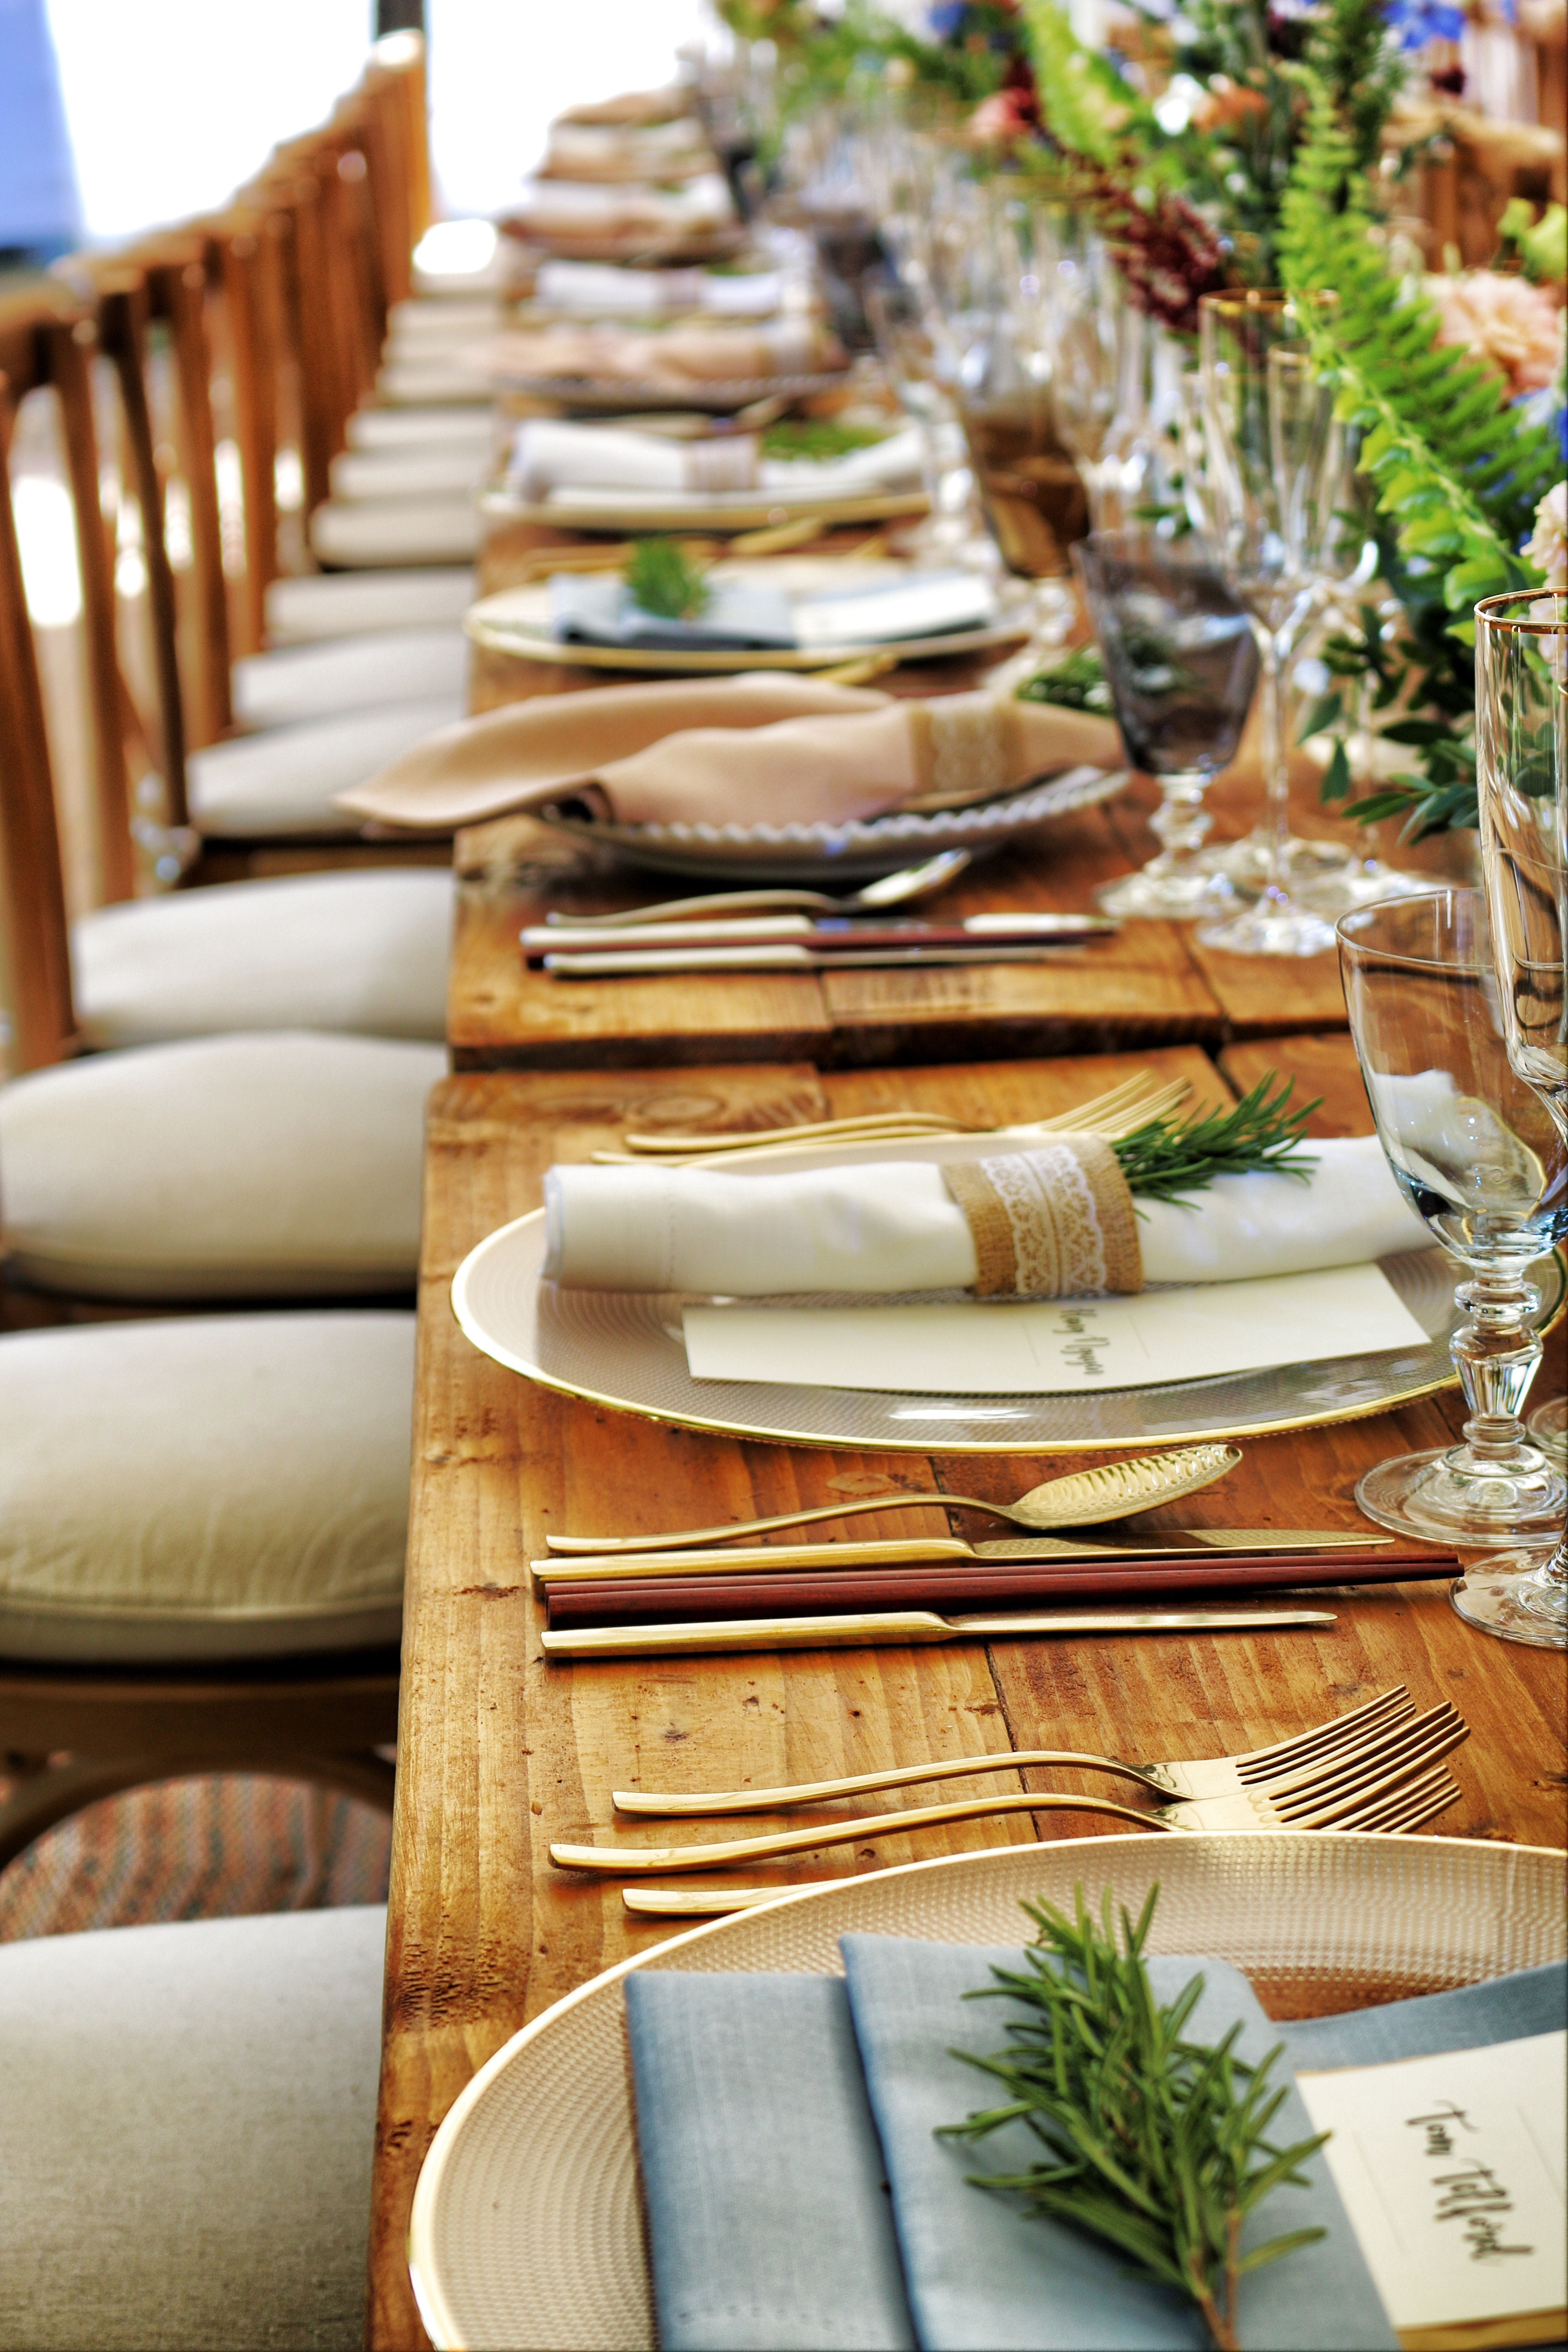 close-up-photo-of-dinnerware-set-on-top-of-table-with-glass-1395967